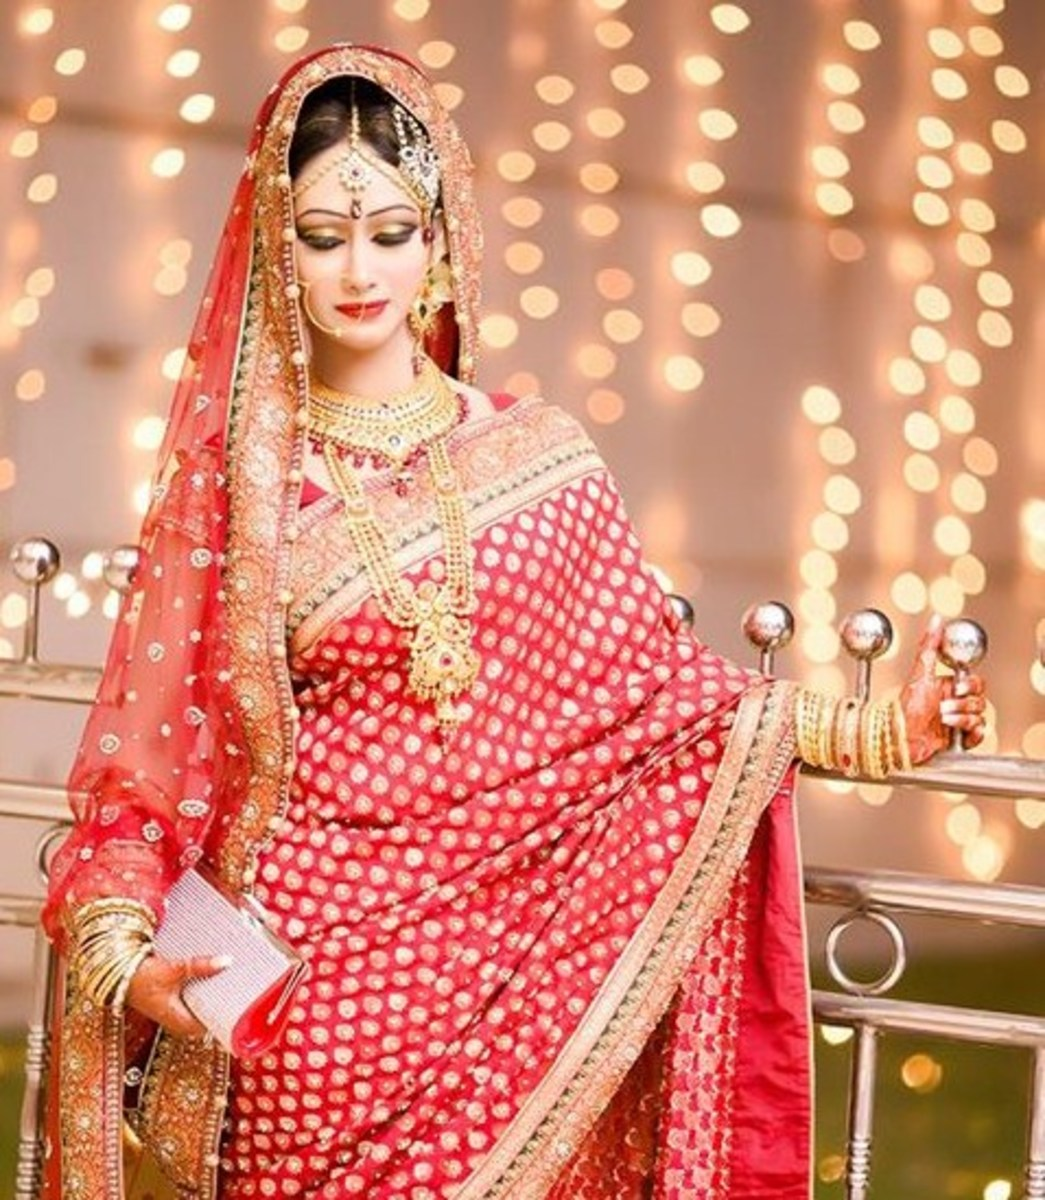 Gorgeous Red Katan Saree from Vasavi Bangladesh. Bangladeshi Bride wearing lush red saree.